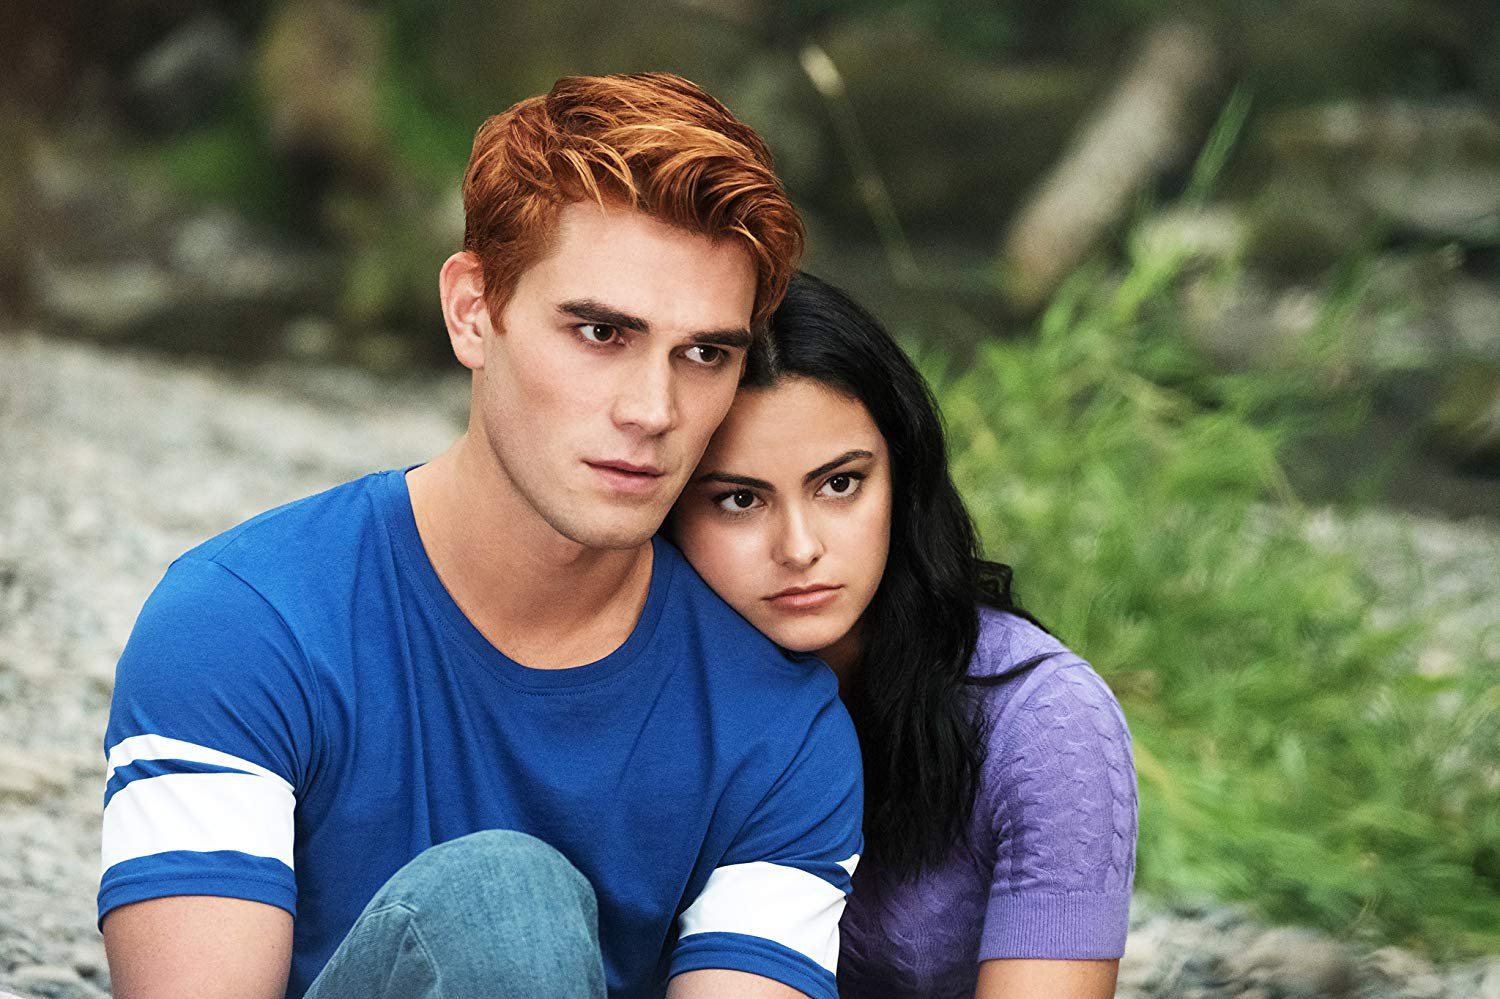 Riverdale spin-off is in the works (another one!) Credit: The CW